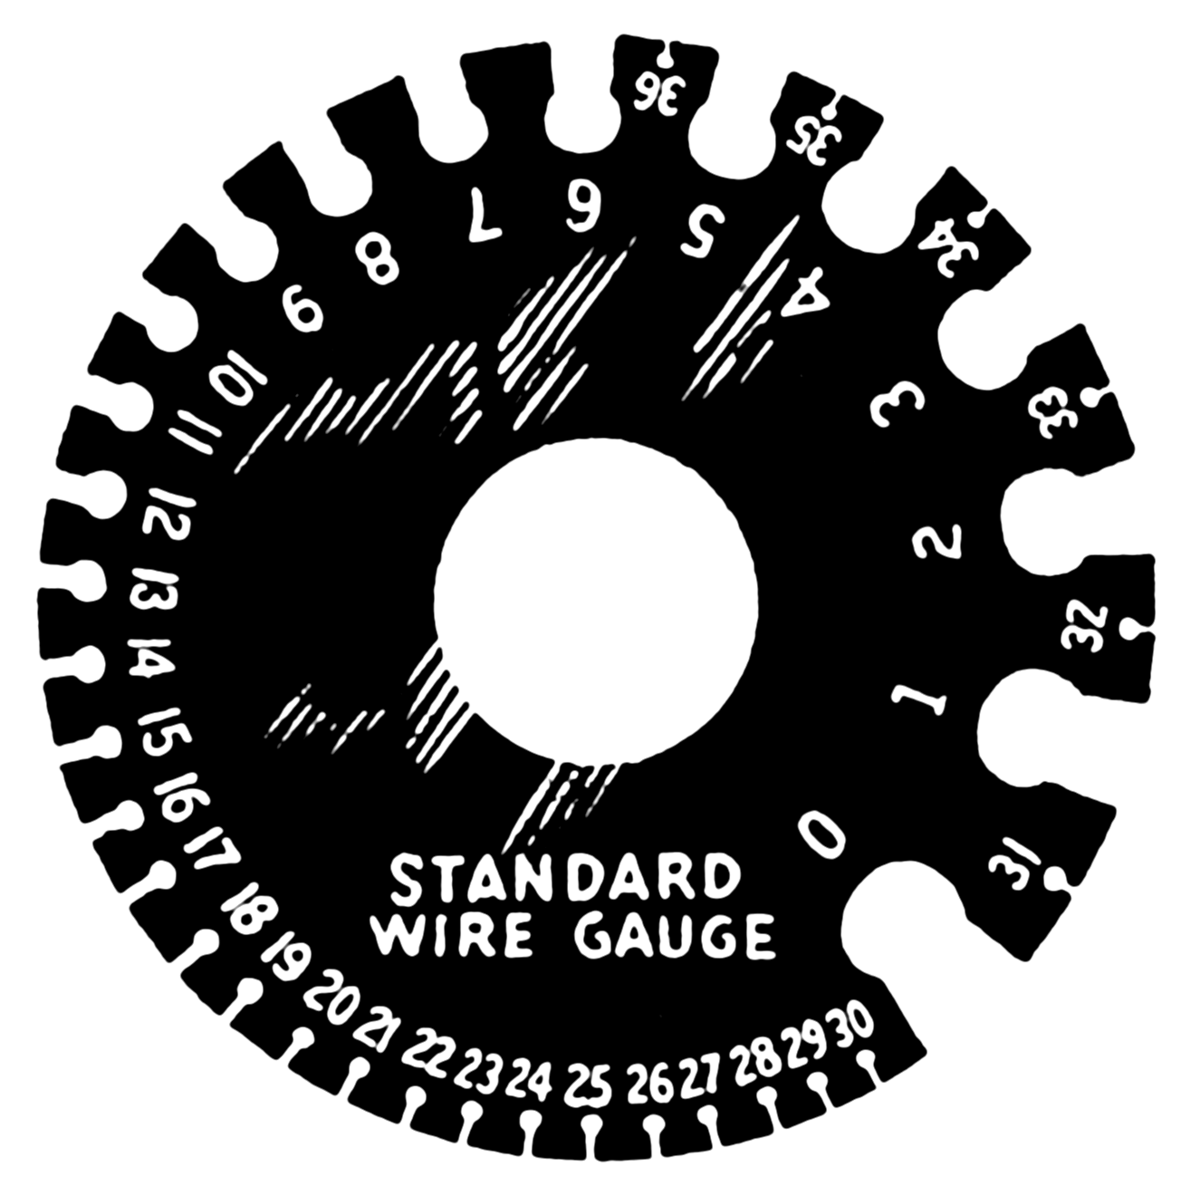 wire gauge wikipedia rh en wikipedia org Wire Gauge Tool Steel Wire Gauge Chart